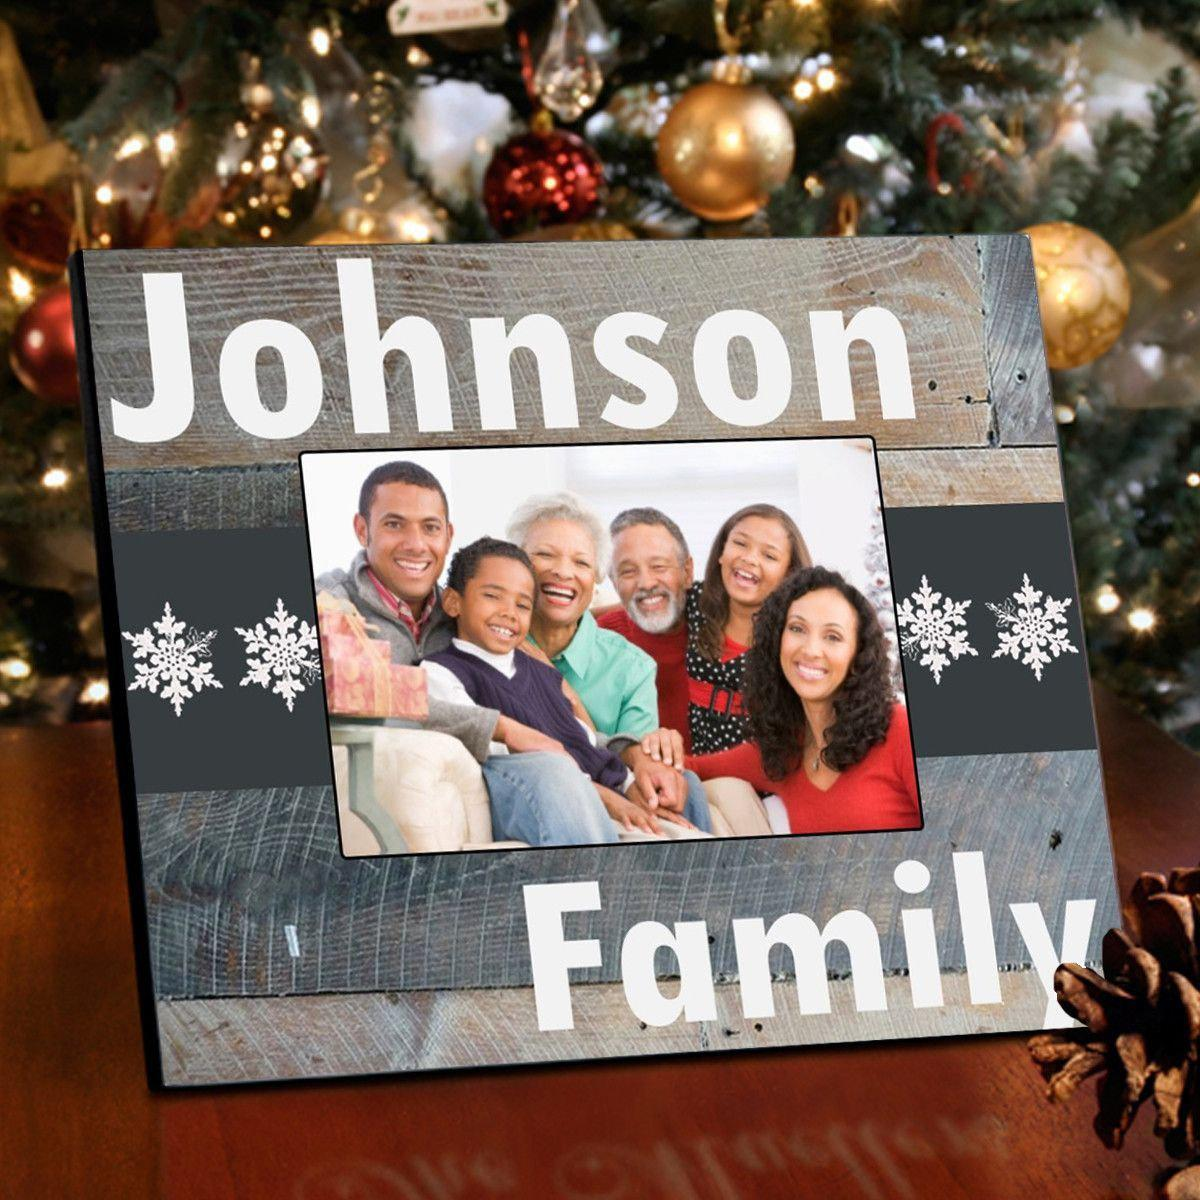 Personalized-Family-Snowflakes-Picture-Frame-Classic-Snowflakes